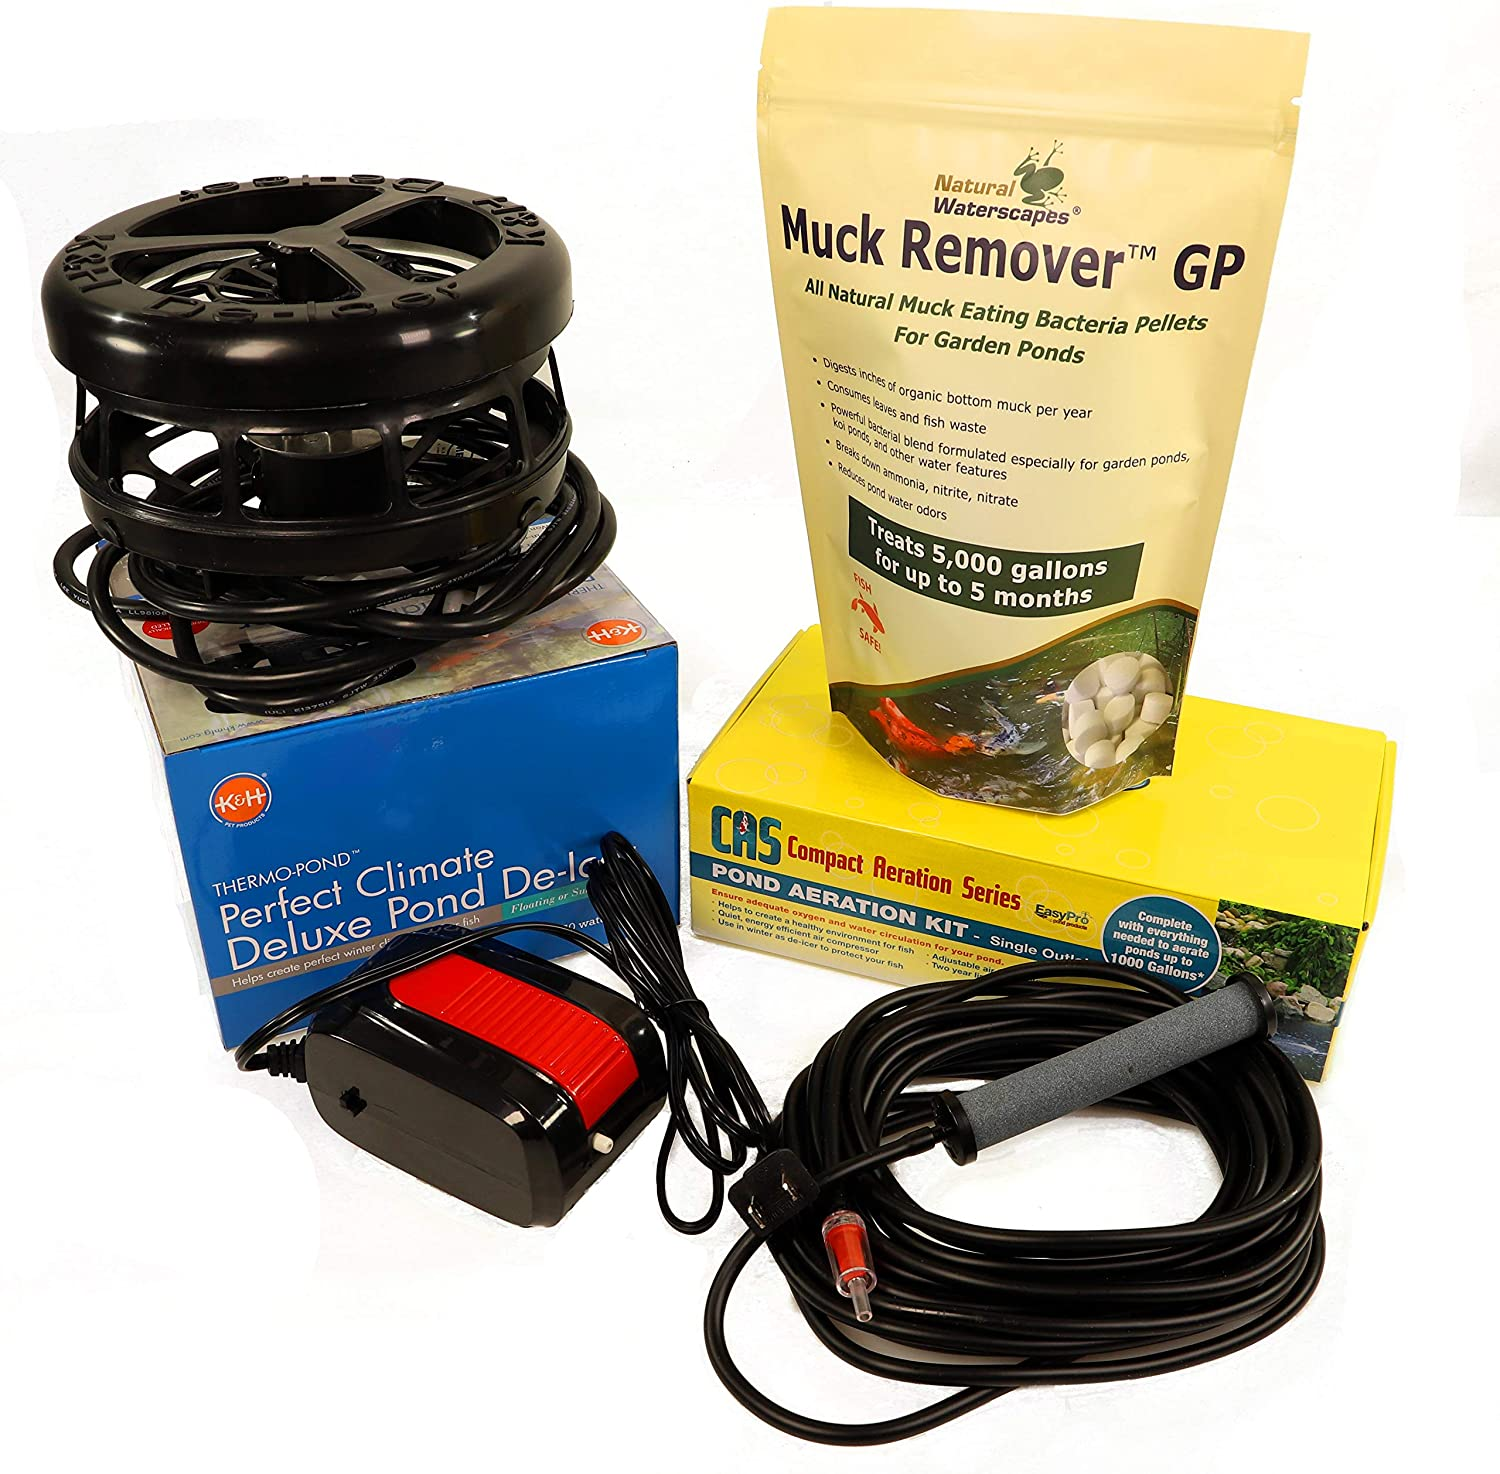 Natural Waterscapes Winter Pond Aerator De-icer Kit